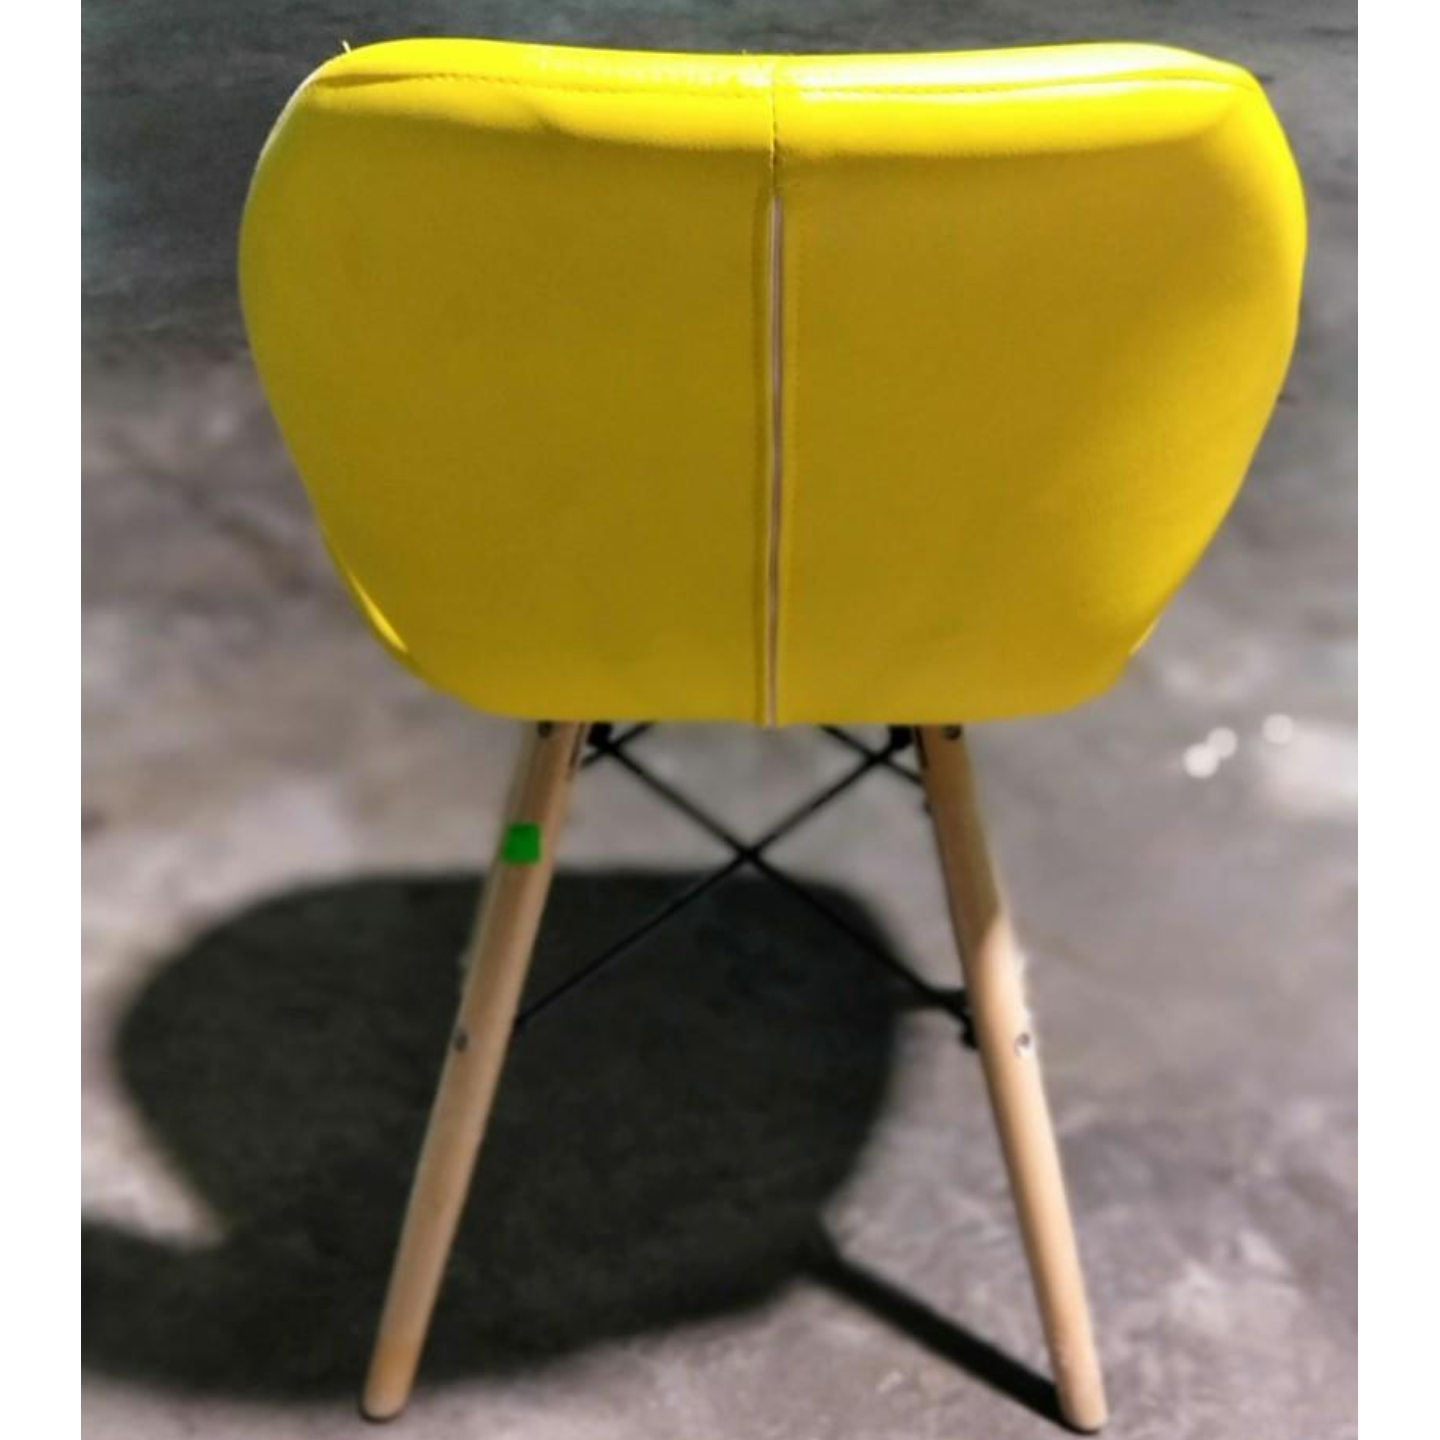 KYOCHI Replica Designer Chair in YELLOW